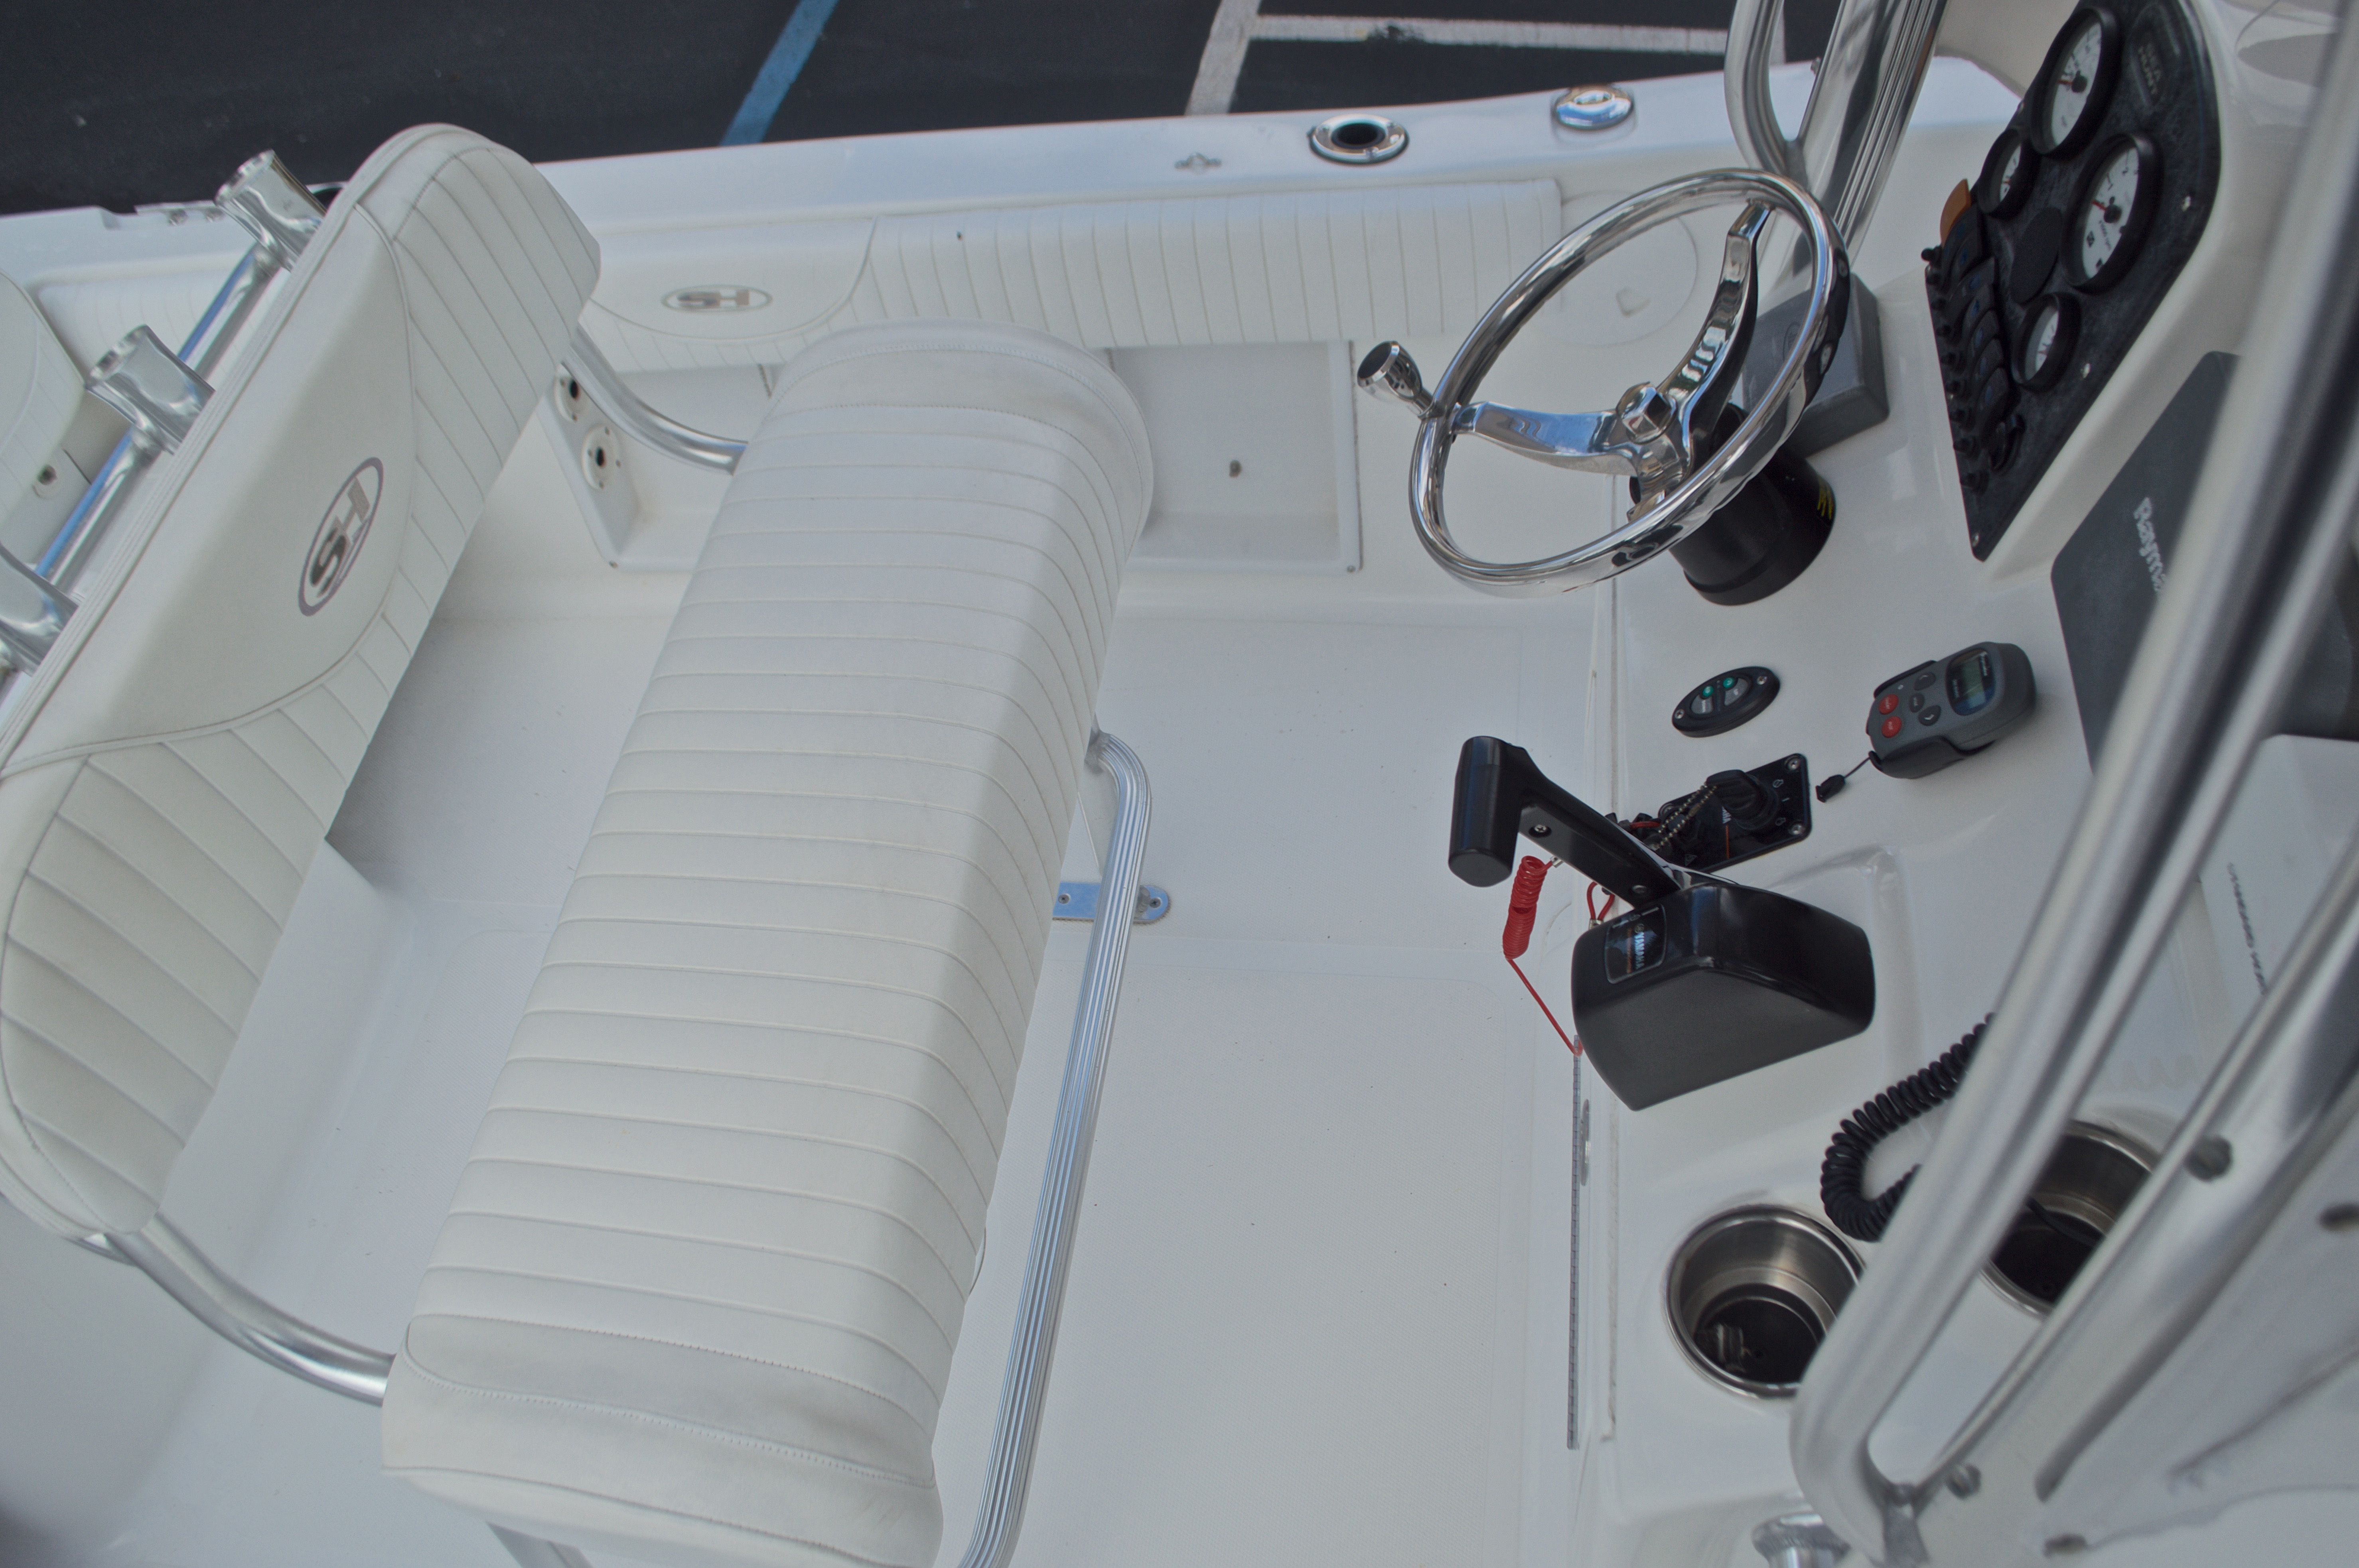 Thumbnail 30 for Used 2009 Sea Hunt 207 Triton boat for sale in West Palm Beach, FL